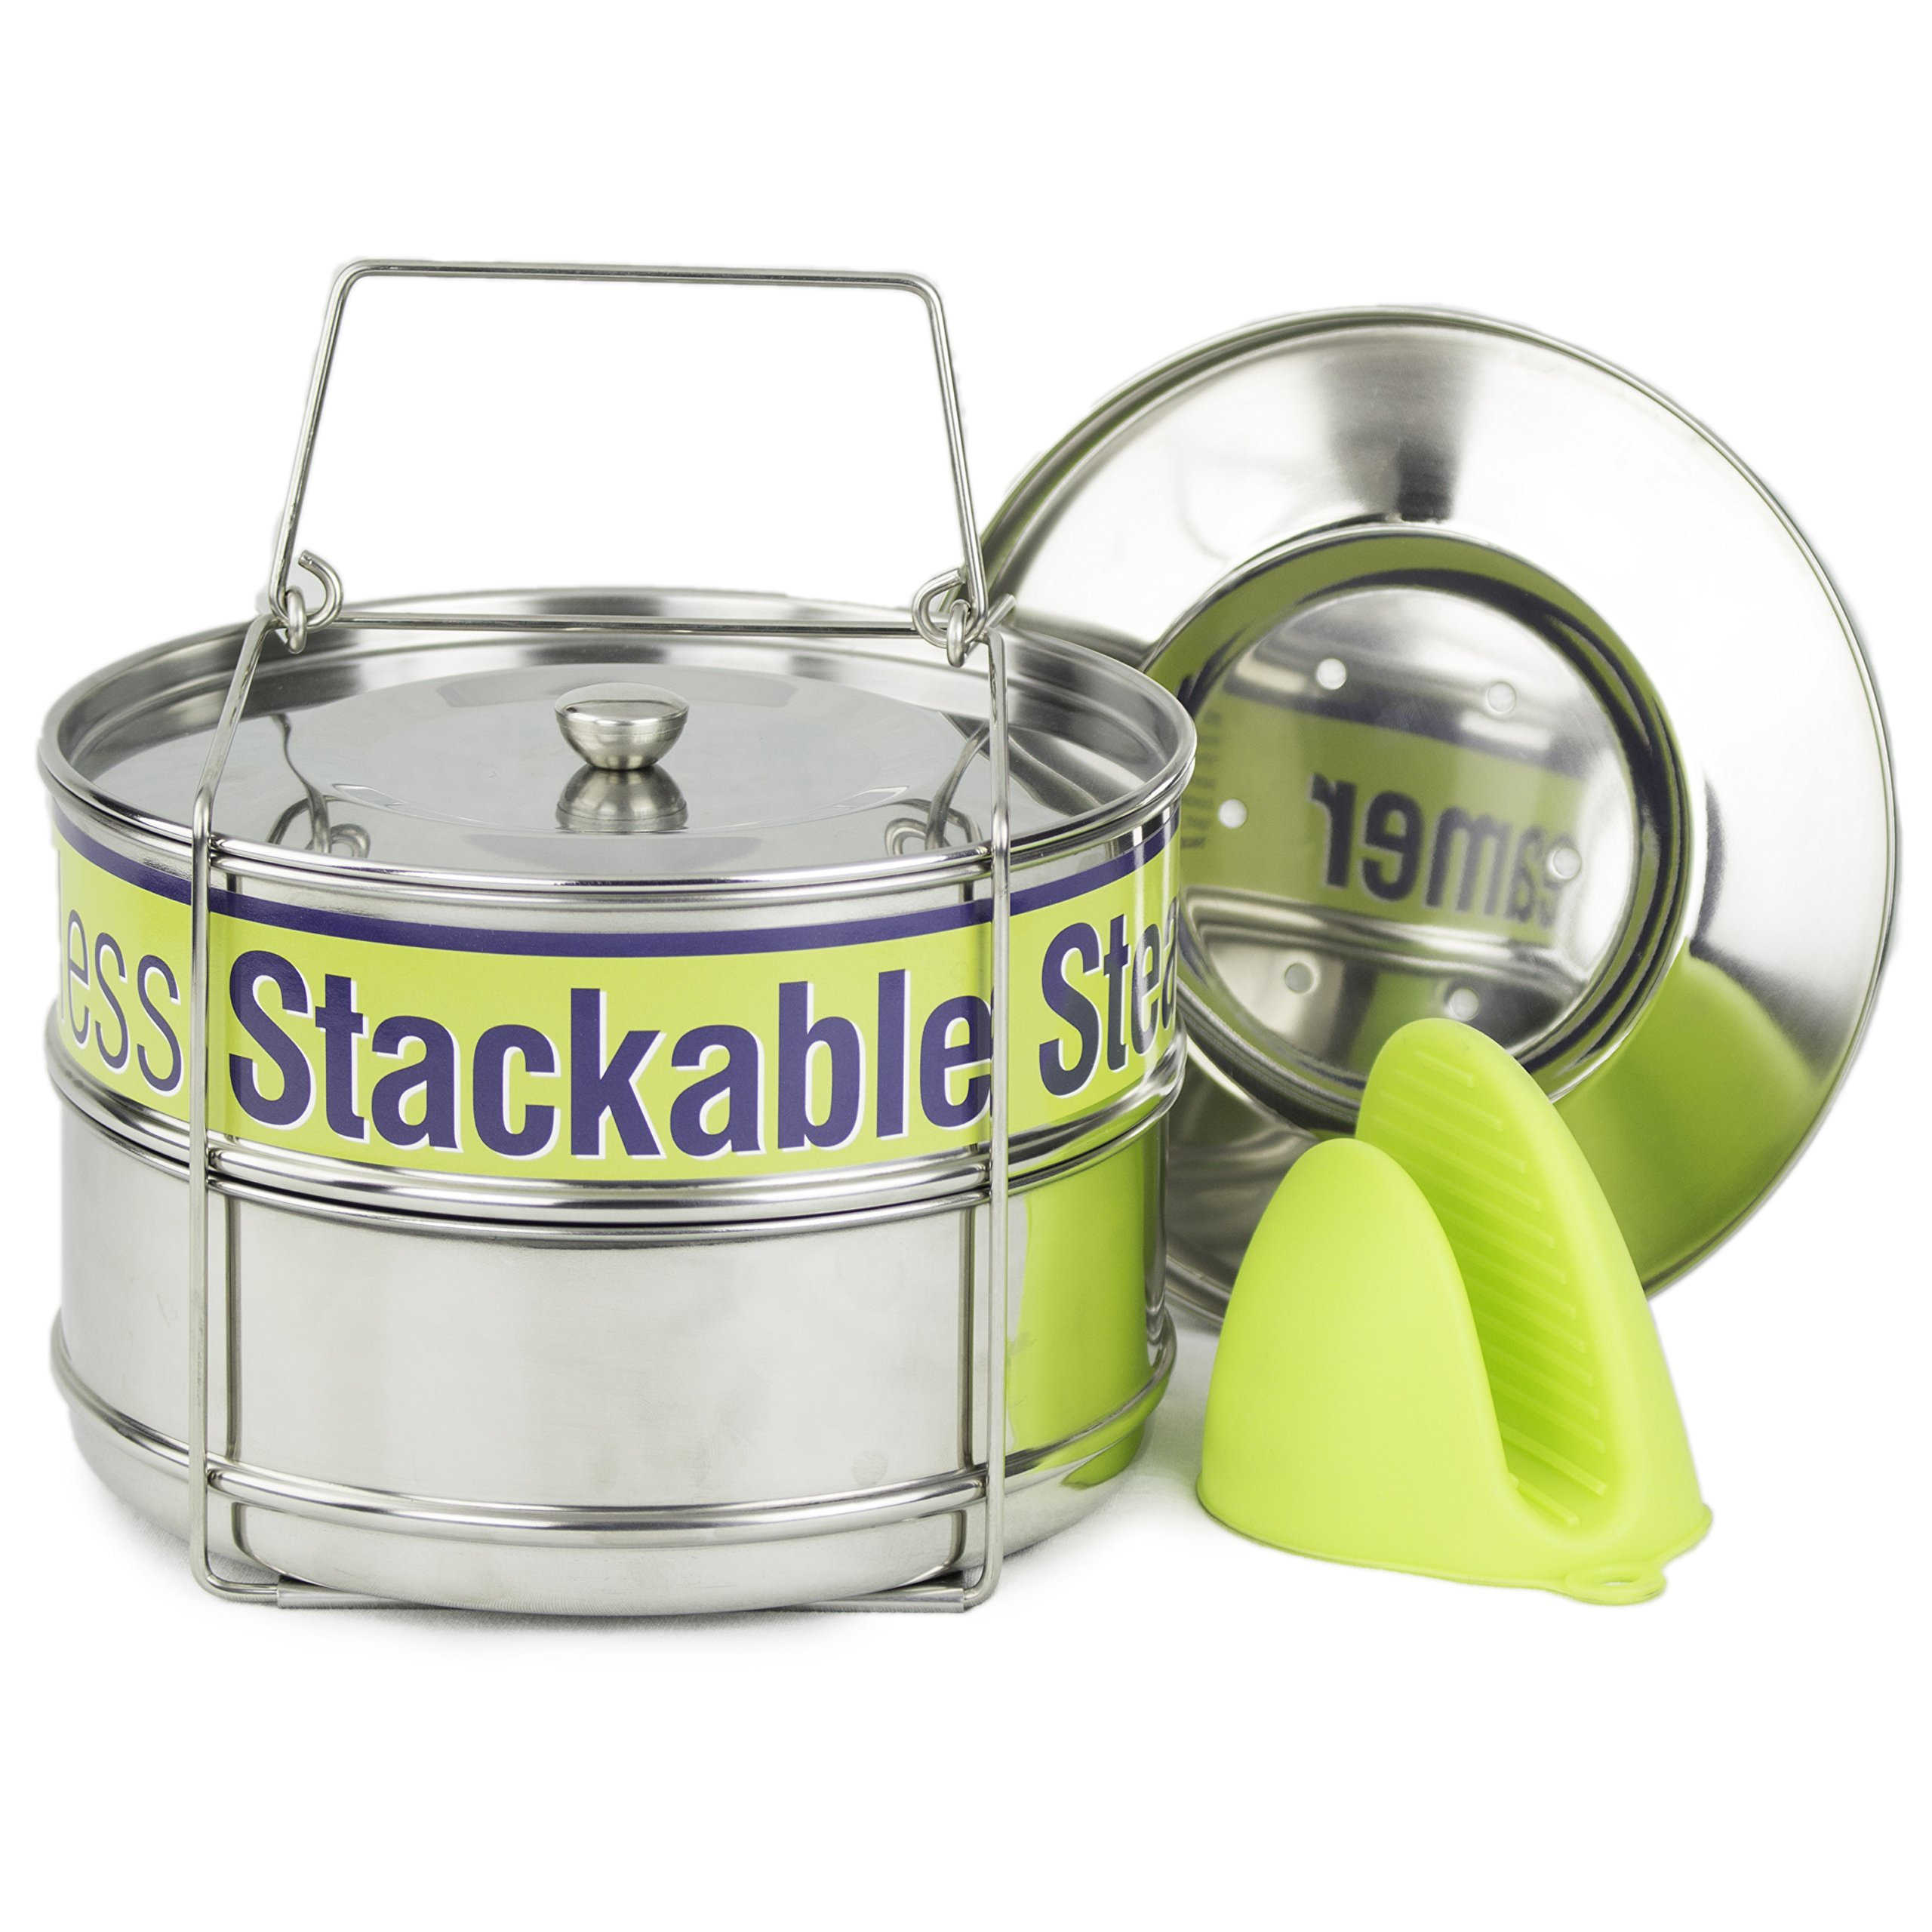 Two Tier Steamer Insert Stackable Food Design | Compatible with Instant Pot Steamer Set Includes 6, 8 Quart Pots, Sling, Mix 'n Match Lids | Stainless Steel Steamer Insert for Veggies, Rice, Pasta, by Stackable Cooker & Steamer (Image #1)